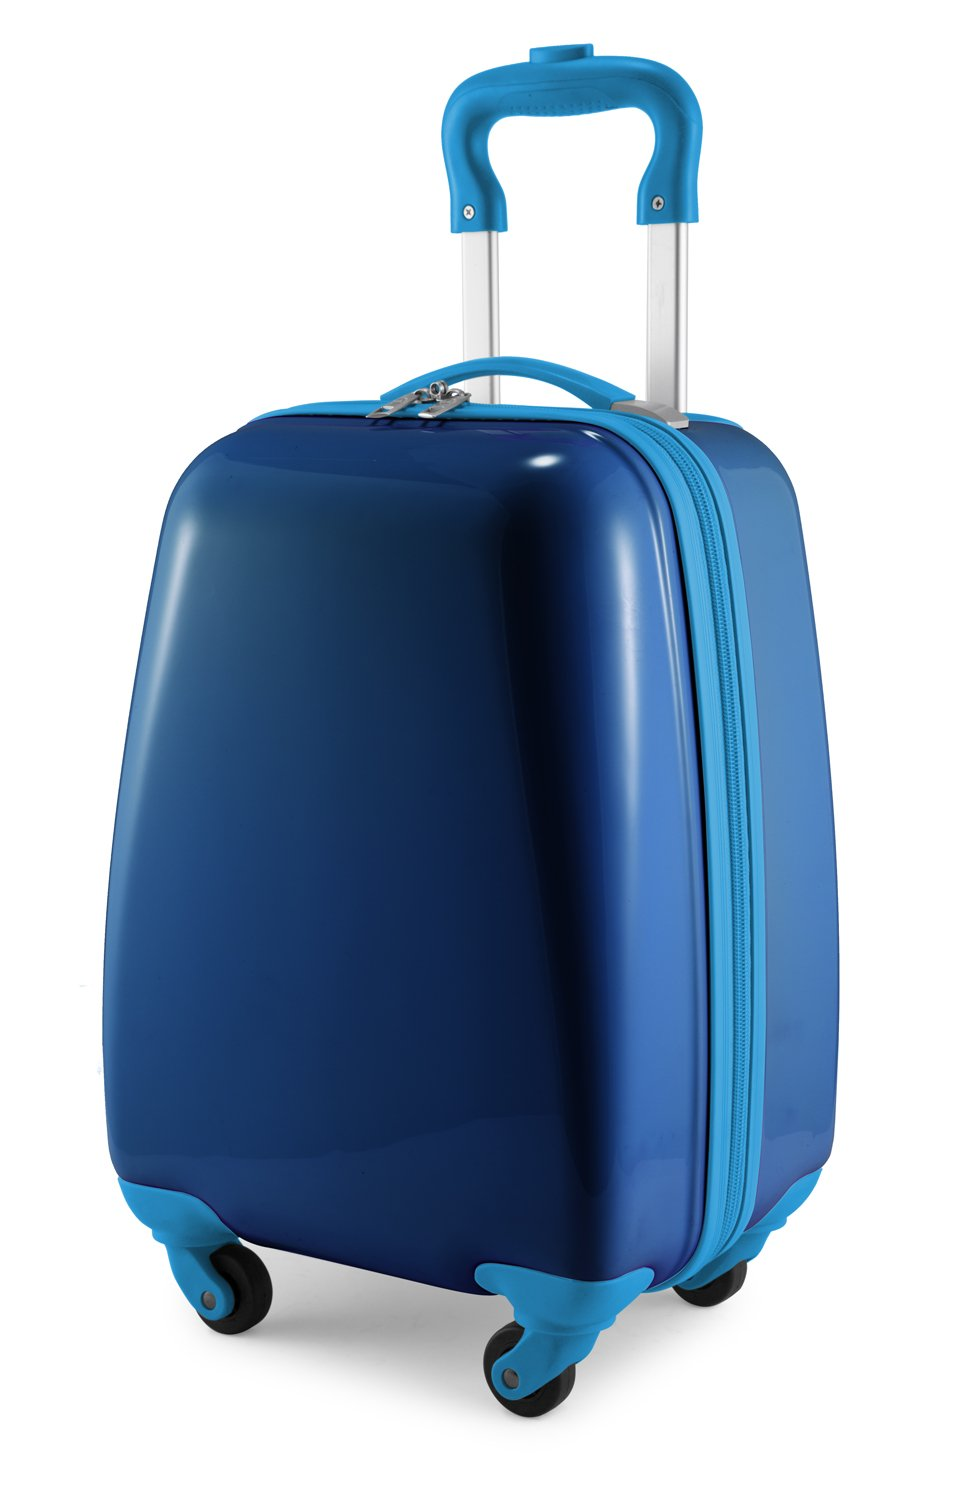 Hauptstadtkoffer Kids Luggage Children's Luggage Suitcase Hard-Side Glossy Multicoloured Dark Blue by Hauptstadtkoffer